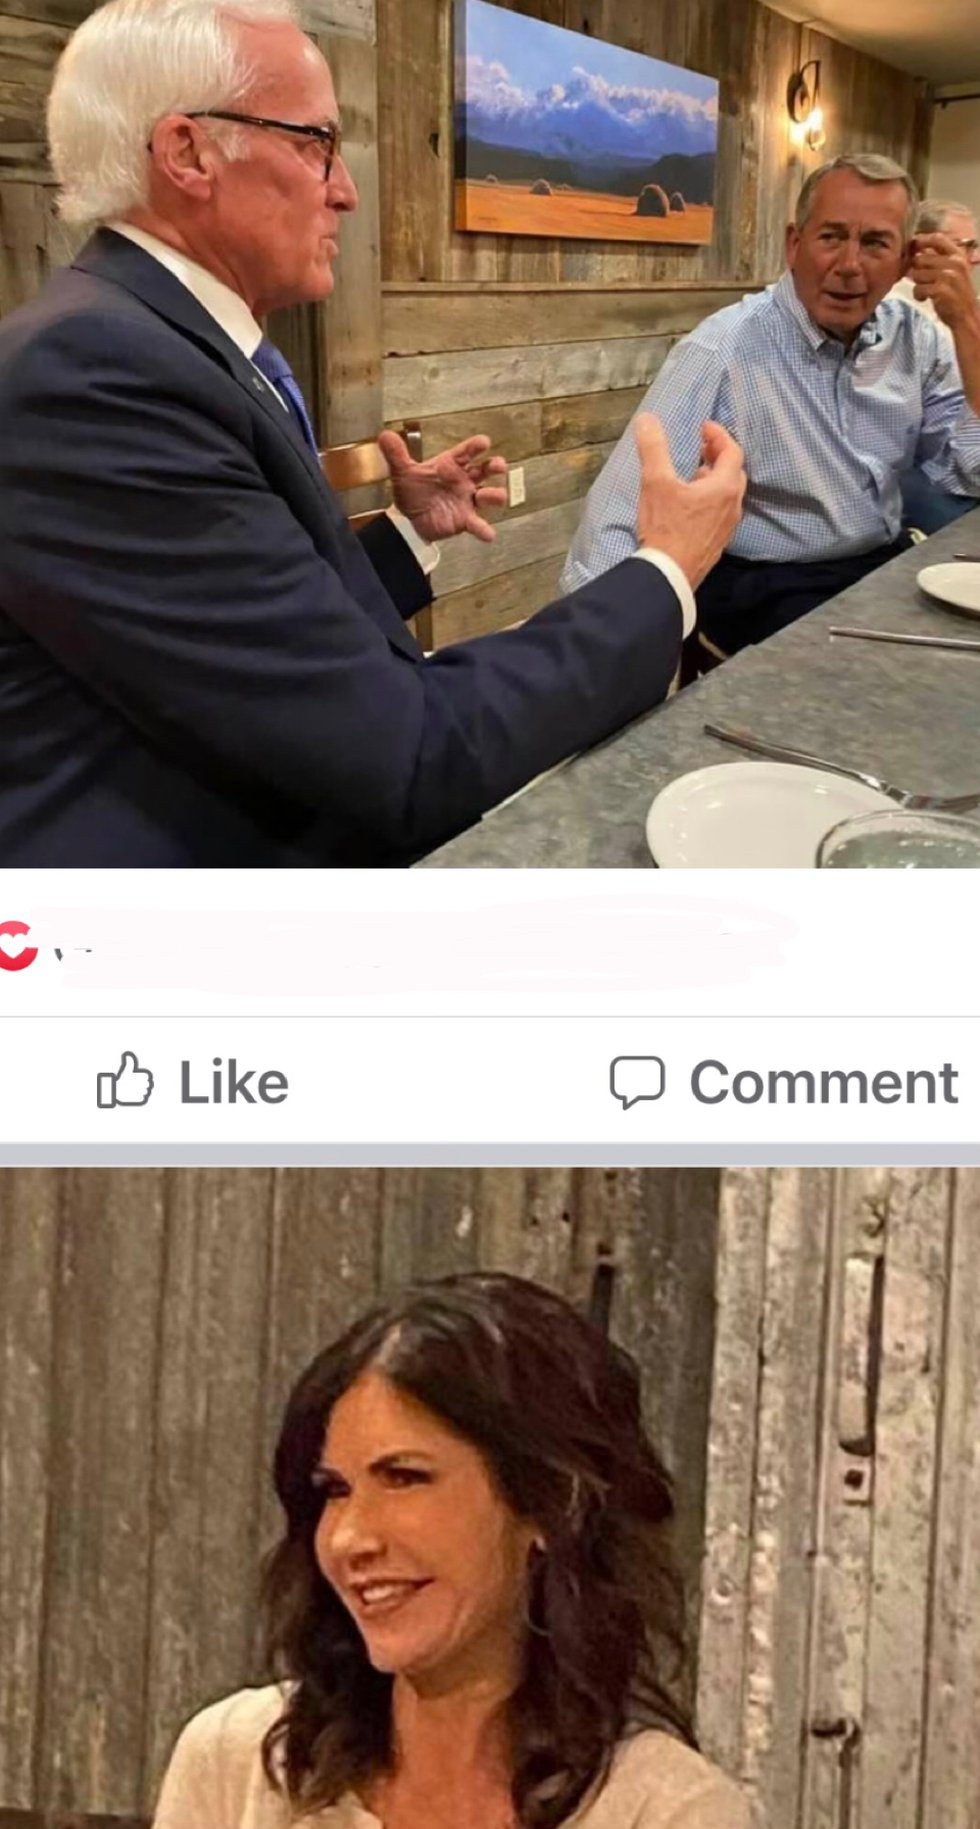 Facebook caption from an attendee Johnson fundraiser with Boehner, Noem